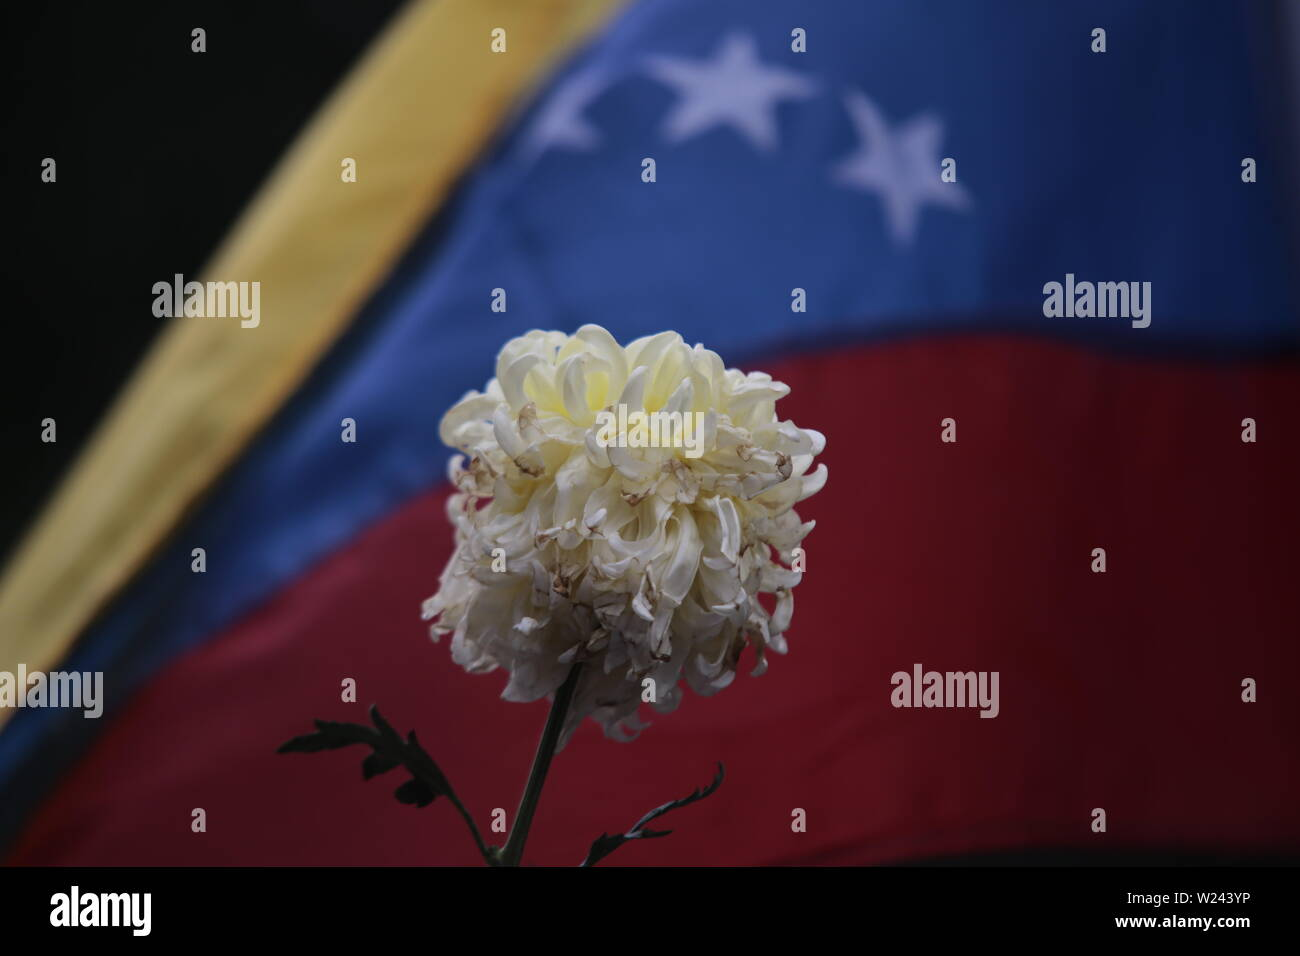 Caracas, Venezuela. 05th July, 2019. A withered flower is held high in front of the flag of Venezuela during a protest against the government on Independence Day. The opposition leader and self-appointed interim president Guaido had called on civil society to protest against the government of head of state Maduro. Venezuela commemorates on July 5 the independence of Spain in 1811. Credit: Rafael Hernandez/dpa/Alamy Live News - Stock Image